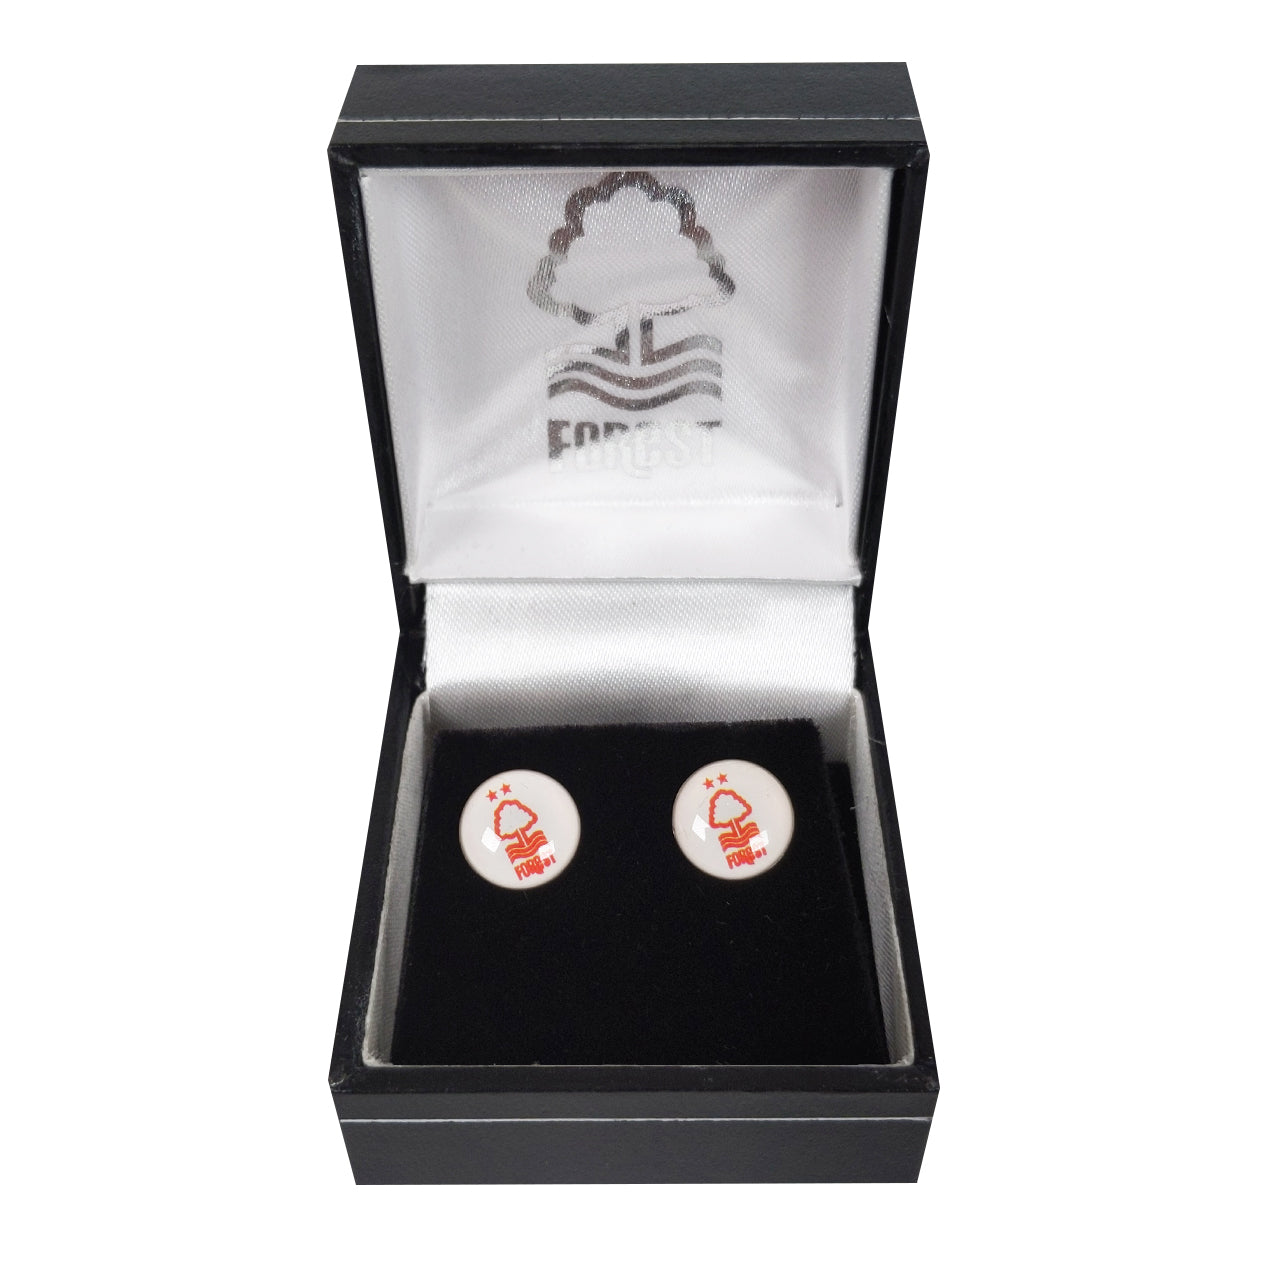 NFFC Colour Crest Earings - Pair